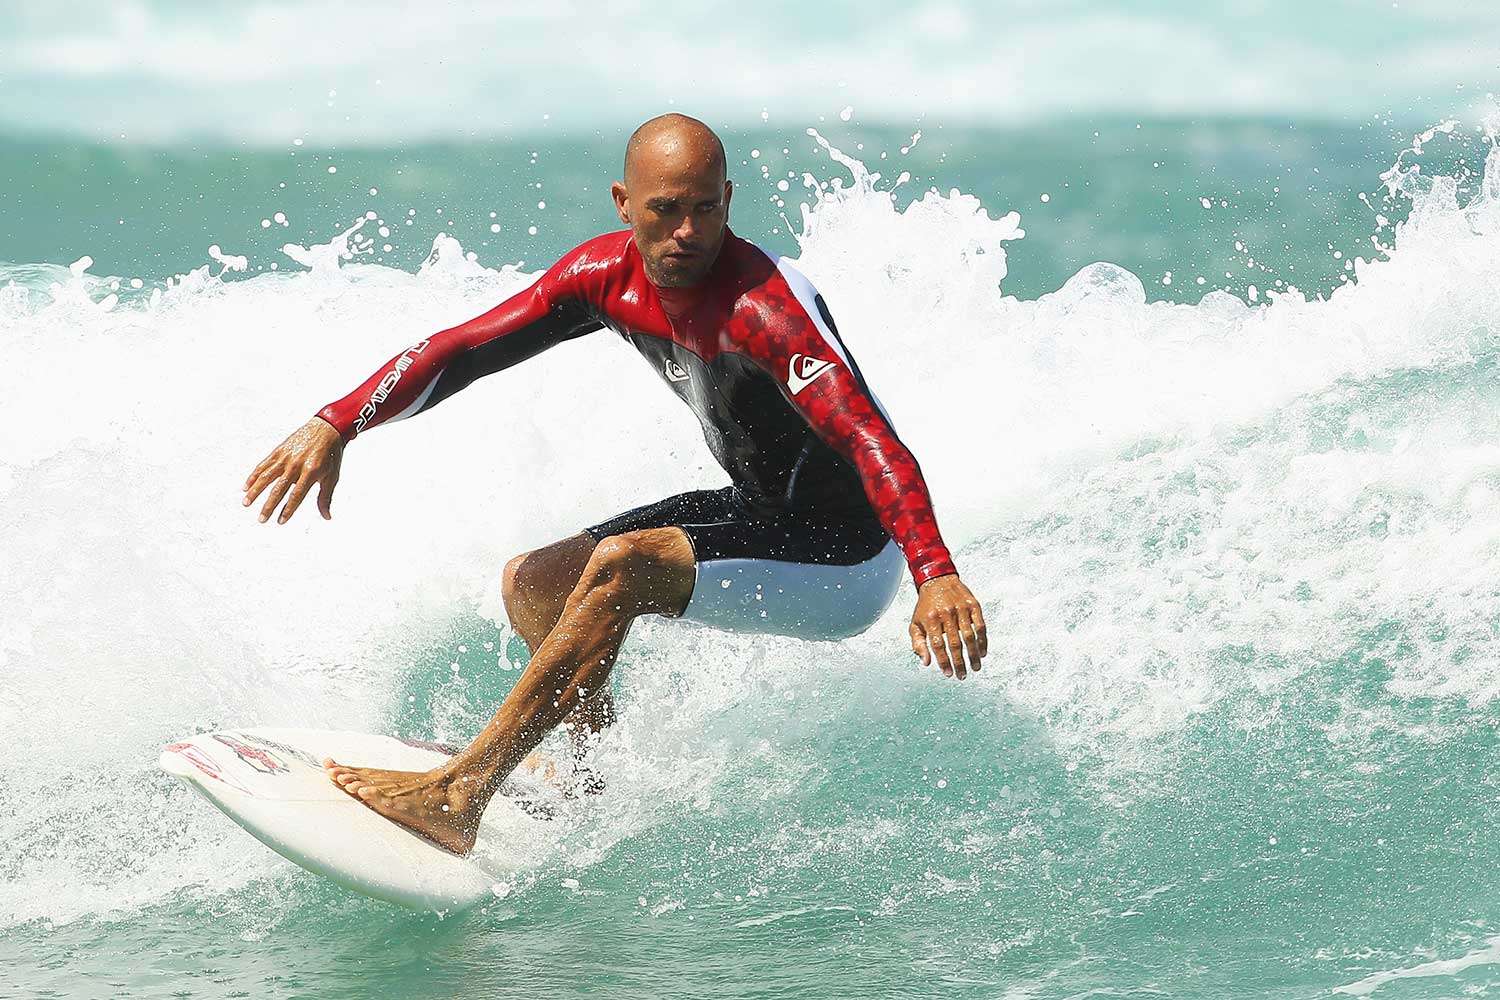 """Welcome to my page where I make fun of things, point out absurdities and tackle serious subjects like the cutback."" Keep up with professional surfer Kelly Slater on Instagram @kellyslater."